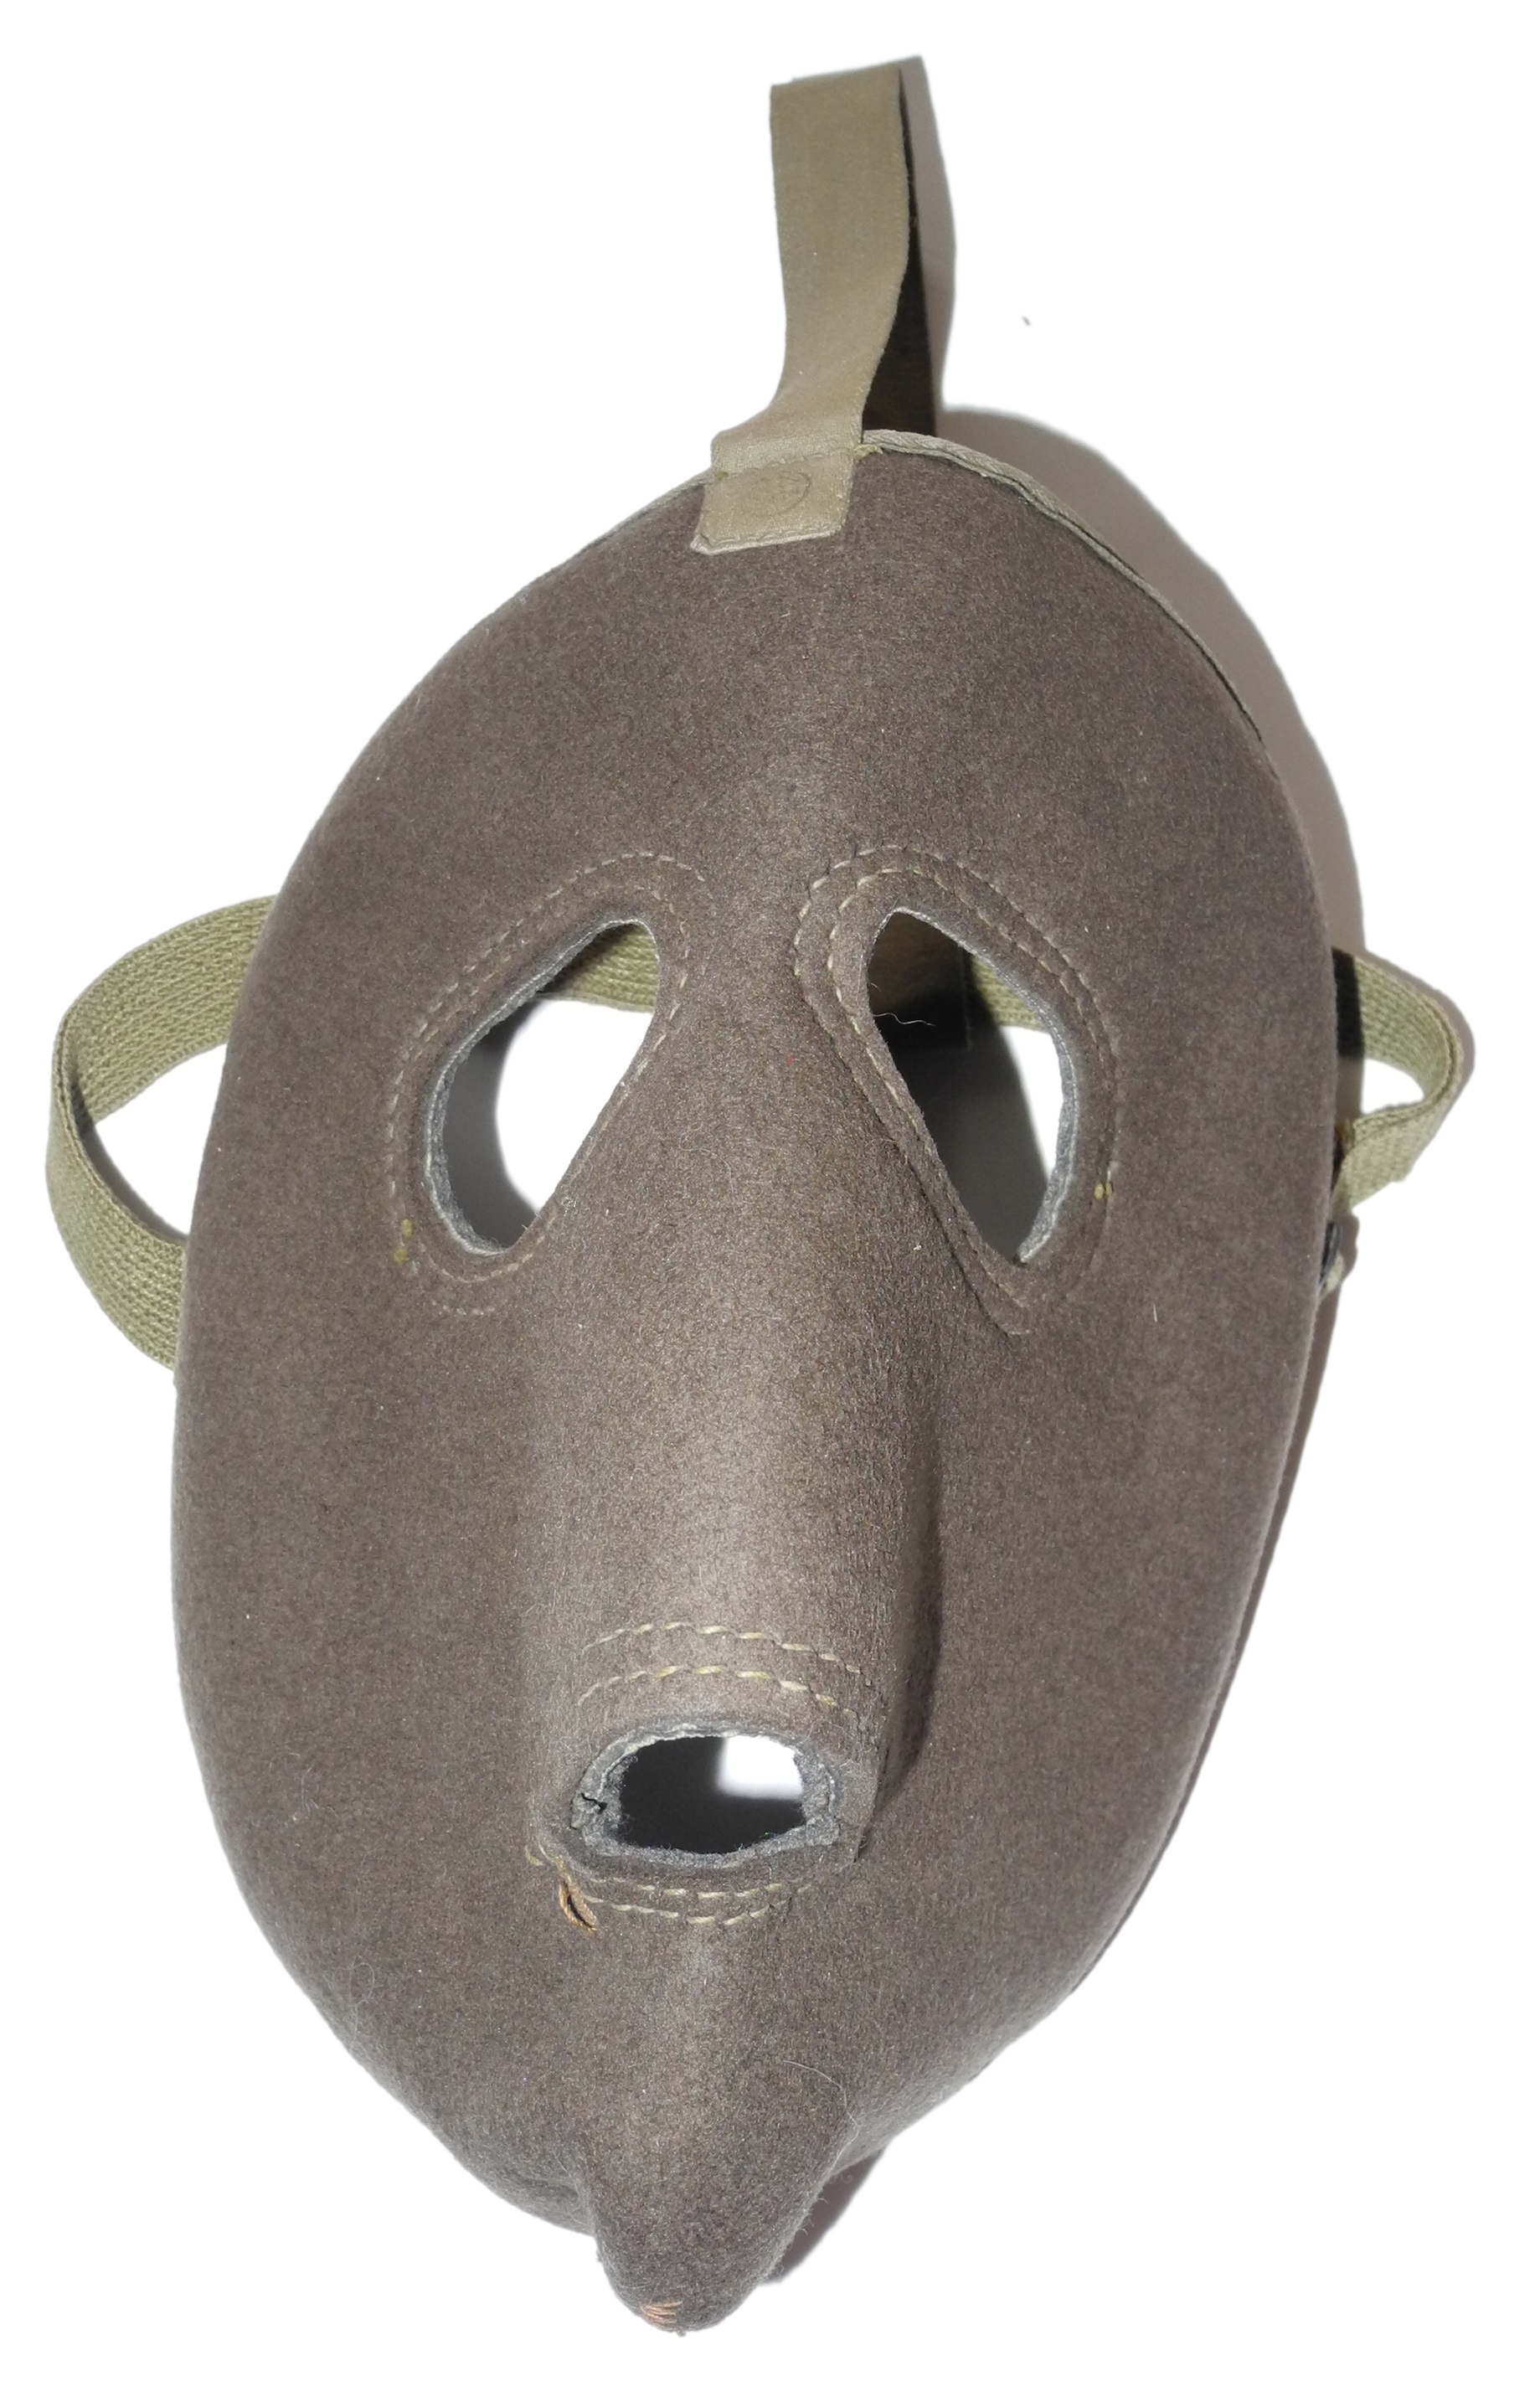 AAF D-1 Face mask